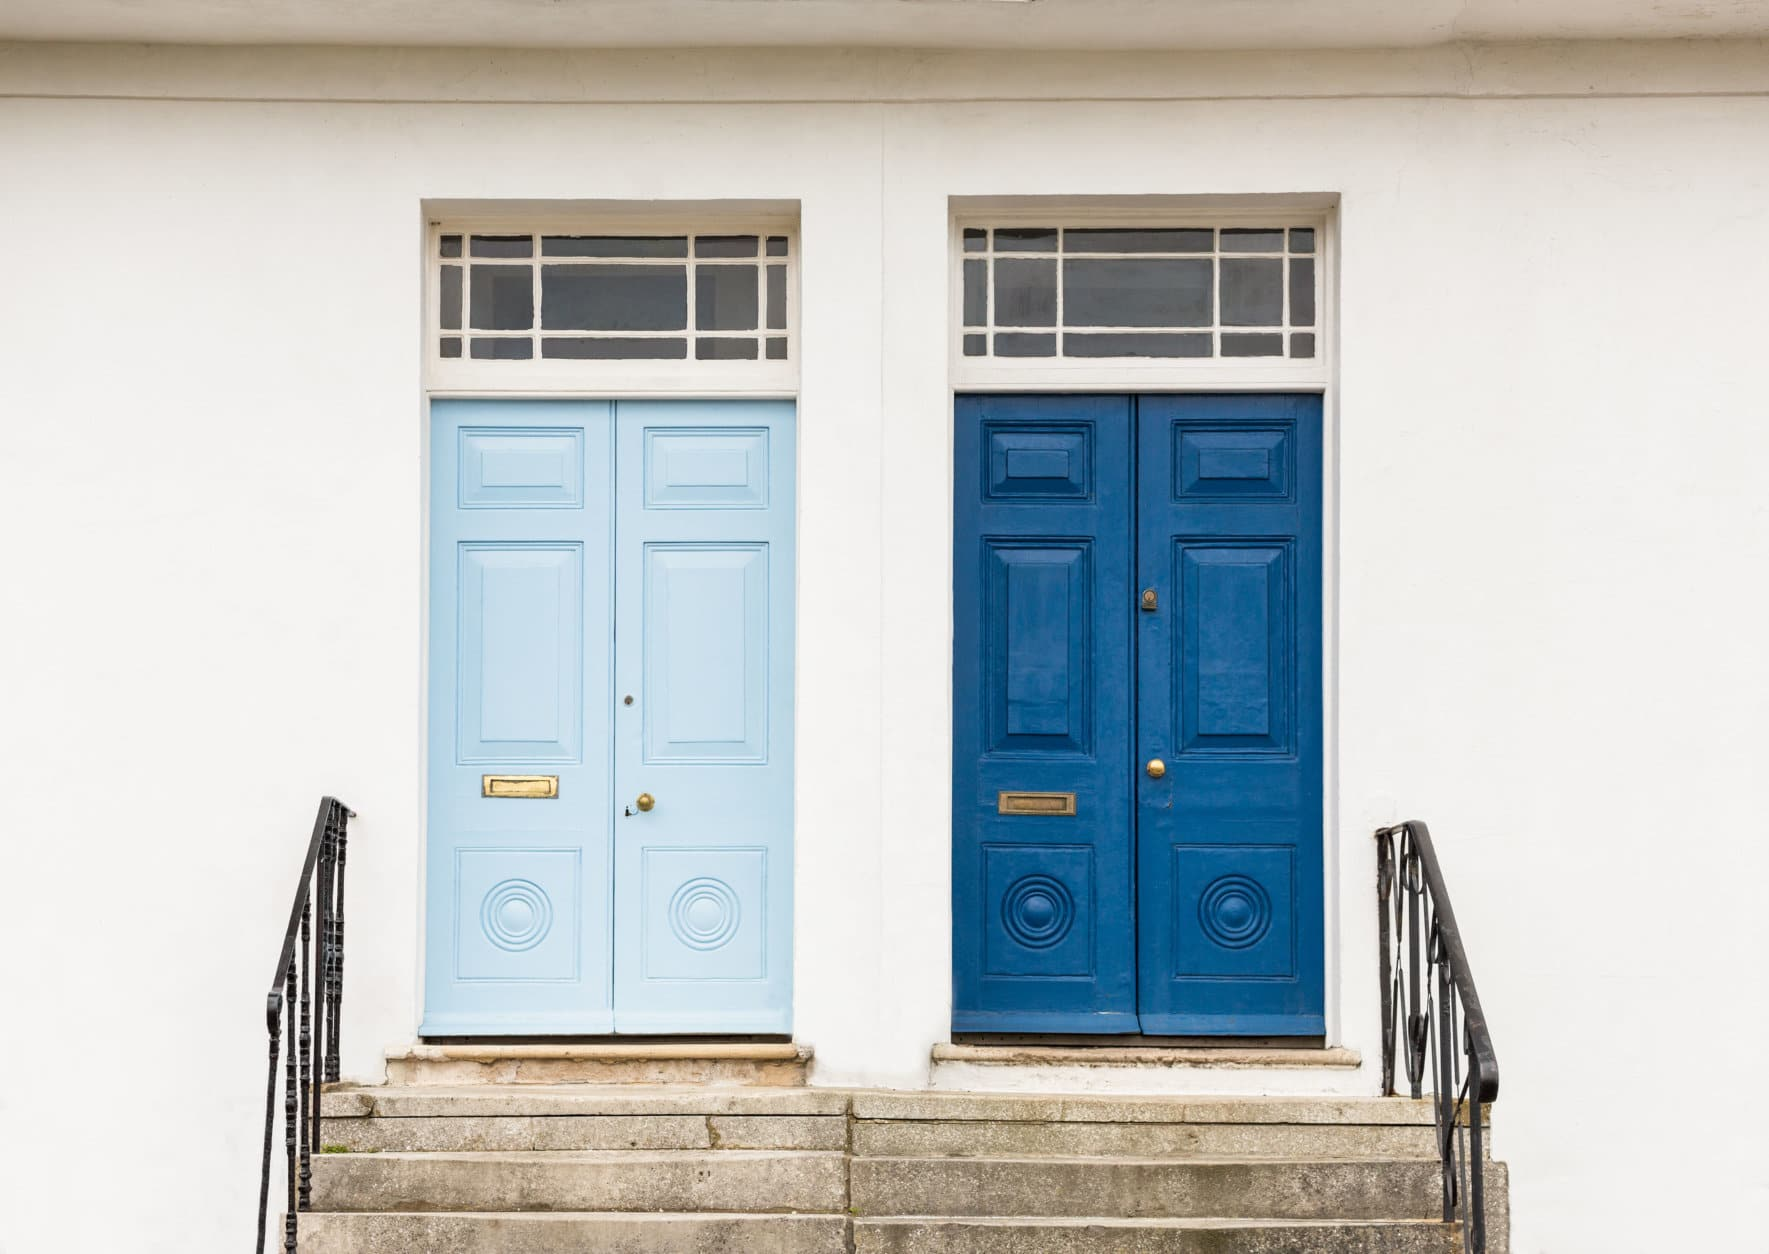 Two wooden blue, one dark blue, one light blue, Georgian style font doors to homes, against a white wall at the top of steps with metal banisters and windows at the top.